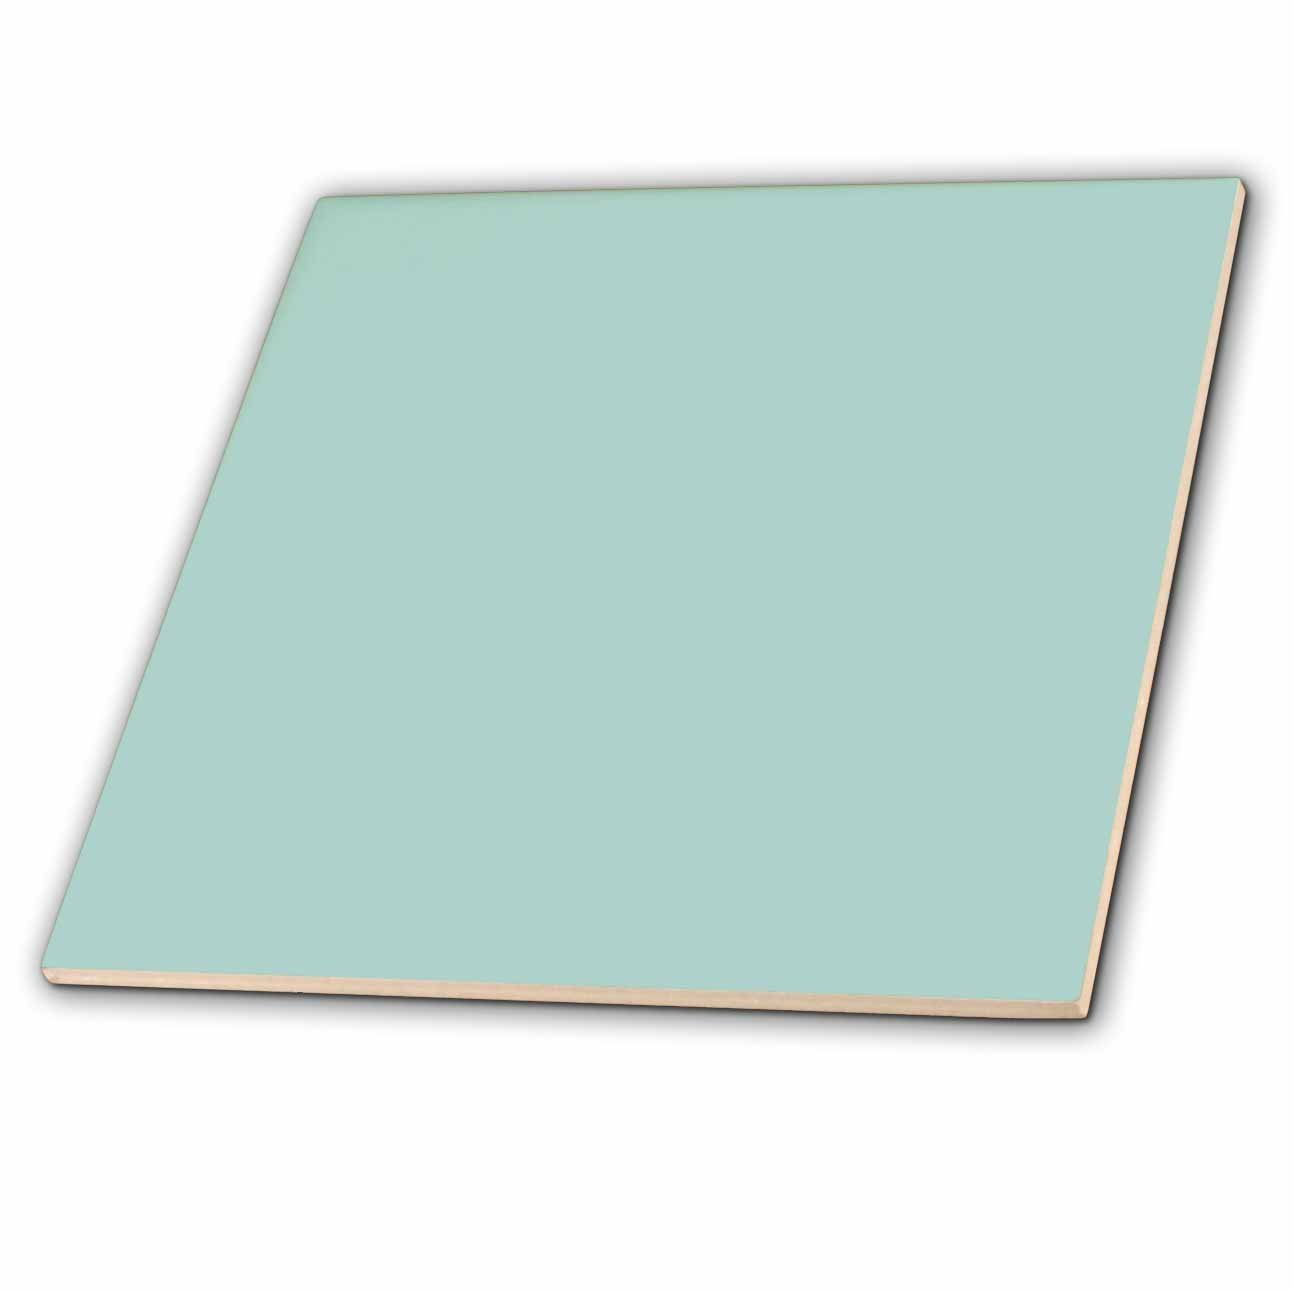 3dRose ct_159844_1 Plain Mint Blue-Solid Color-Light Turquoise-Grey-Gray-Modern Contemporary Simple Pastel Teal-Ceramic Tile, 4-Inch